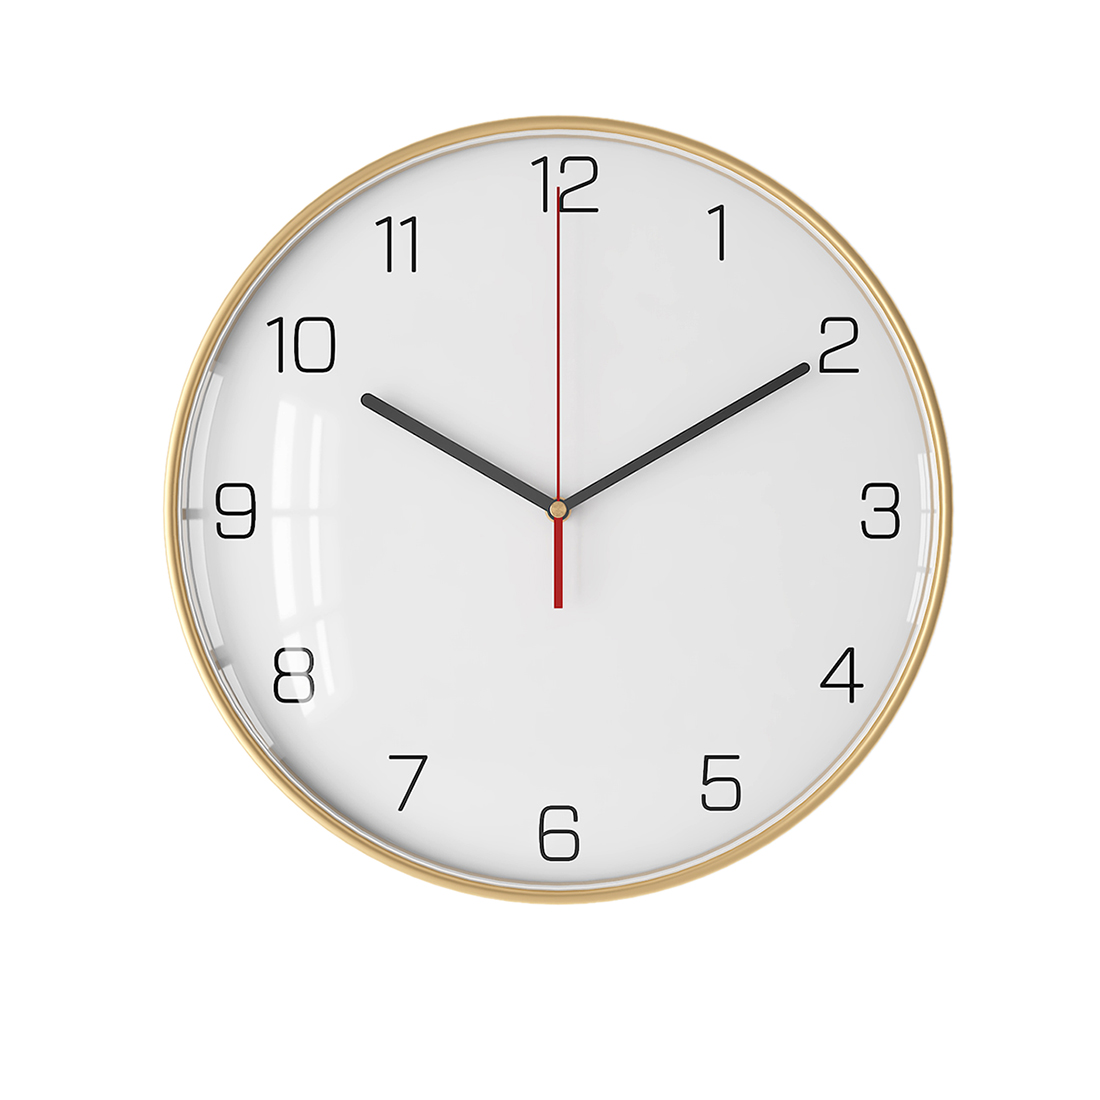 12 Inches 30cm Simple Silent Wall Clock Hanging Clock Wall Decoration With Golden Black Metal Frame For Home Decor - Thin Type